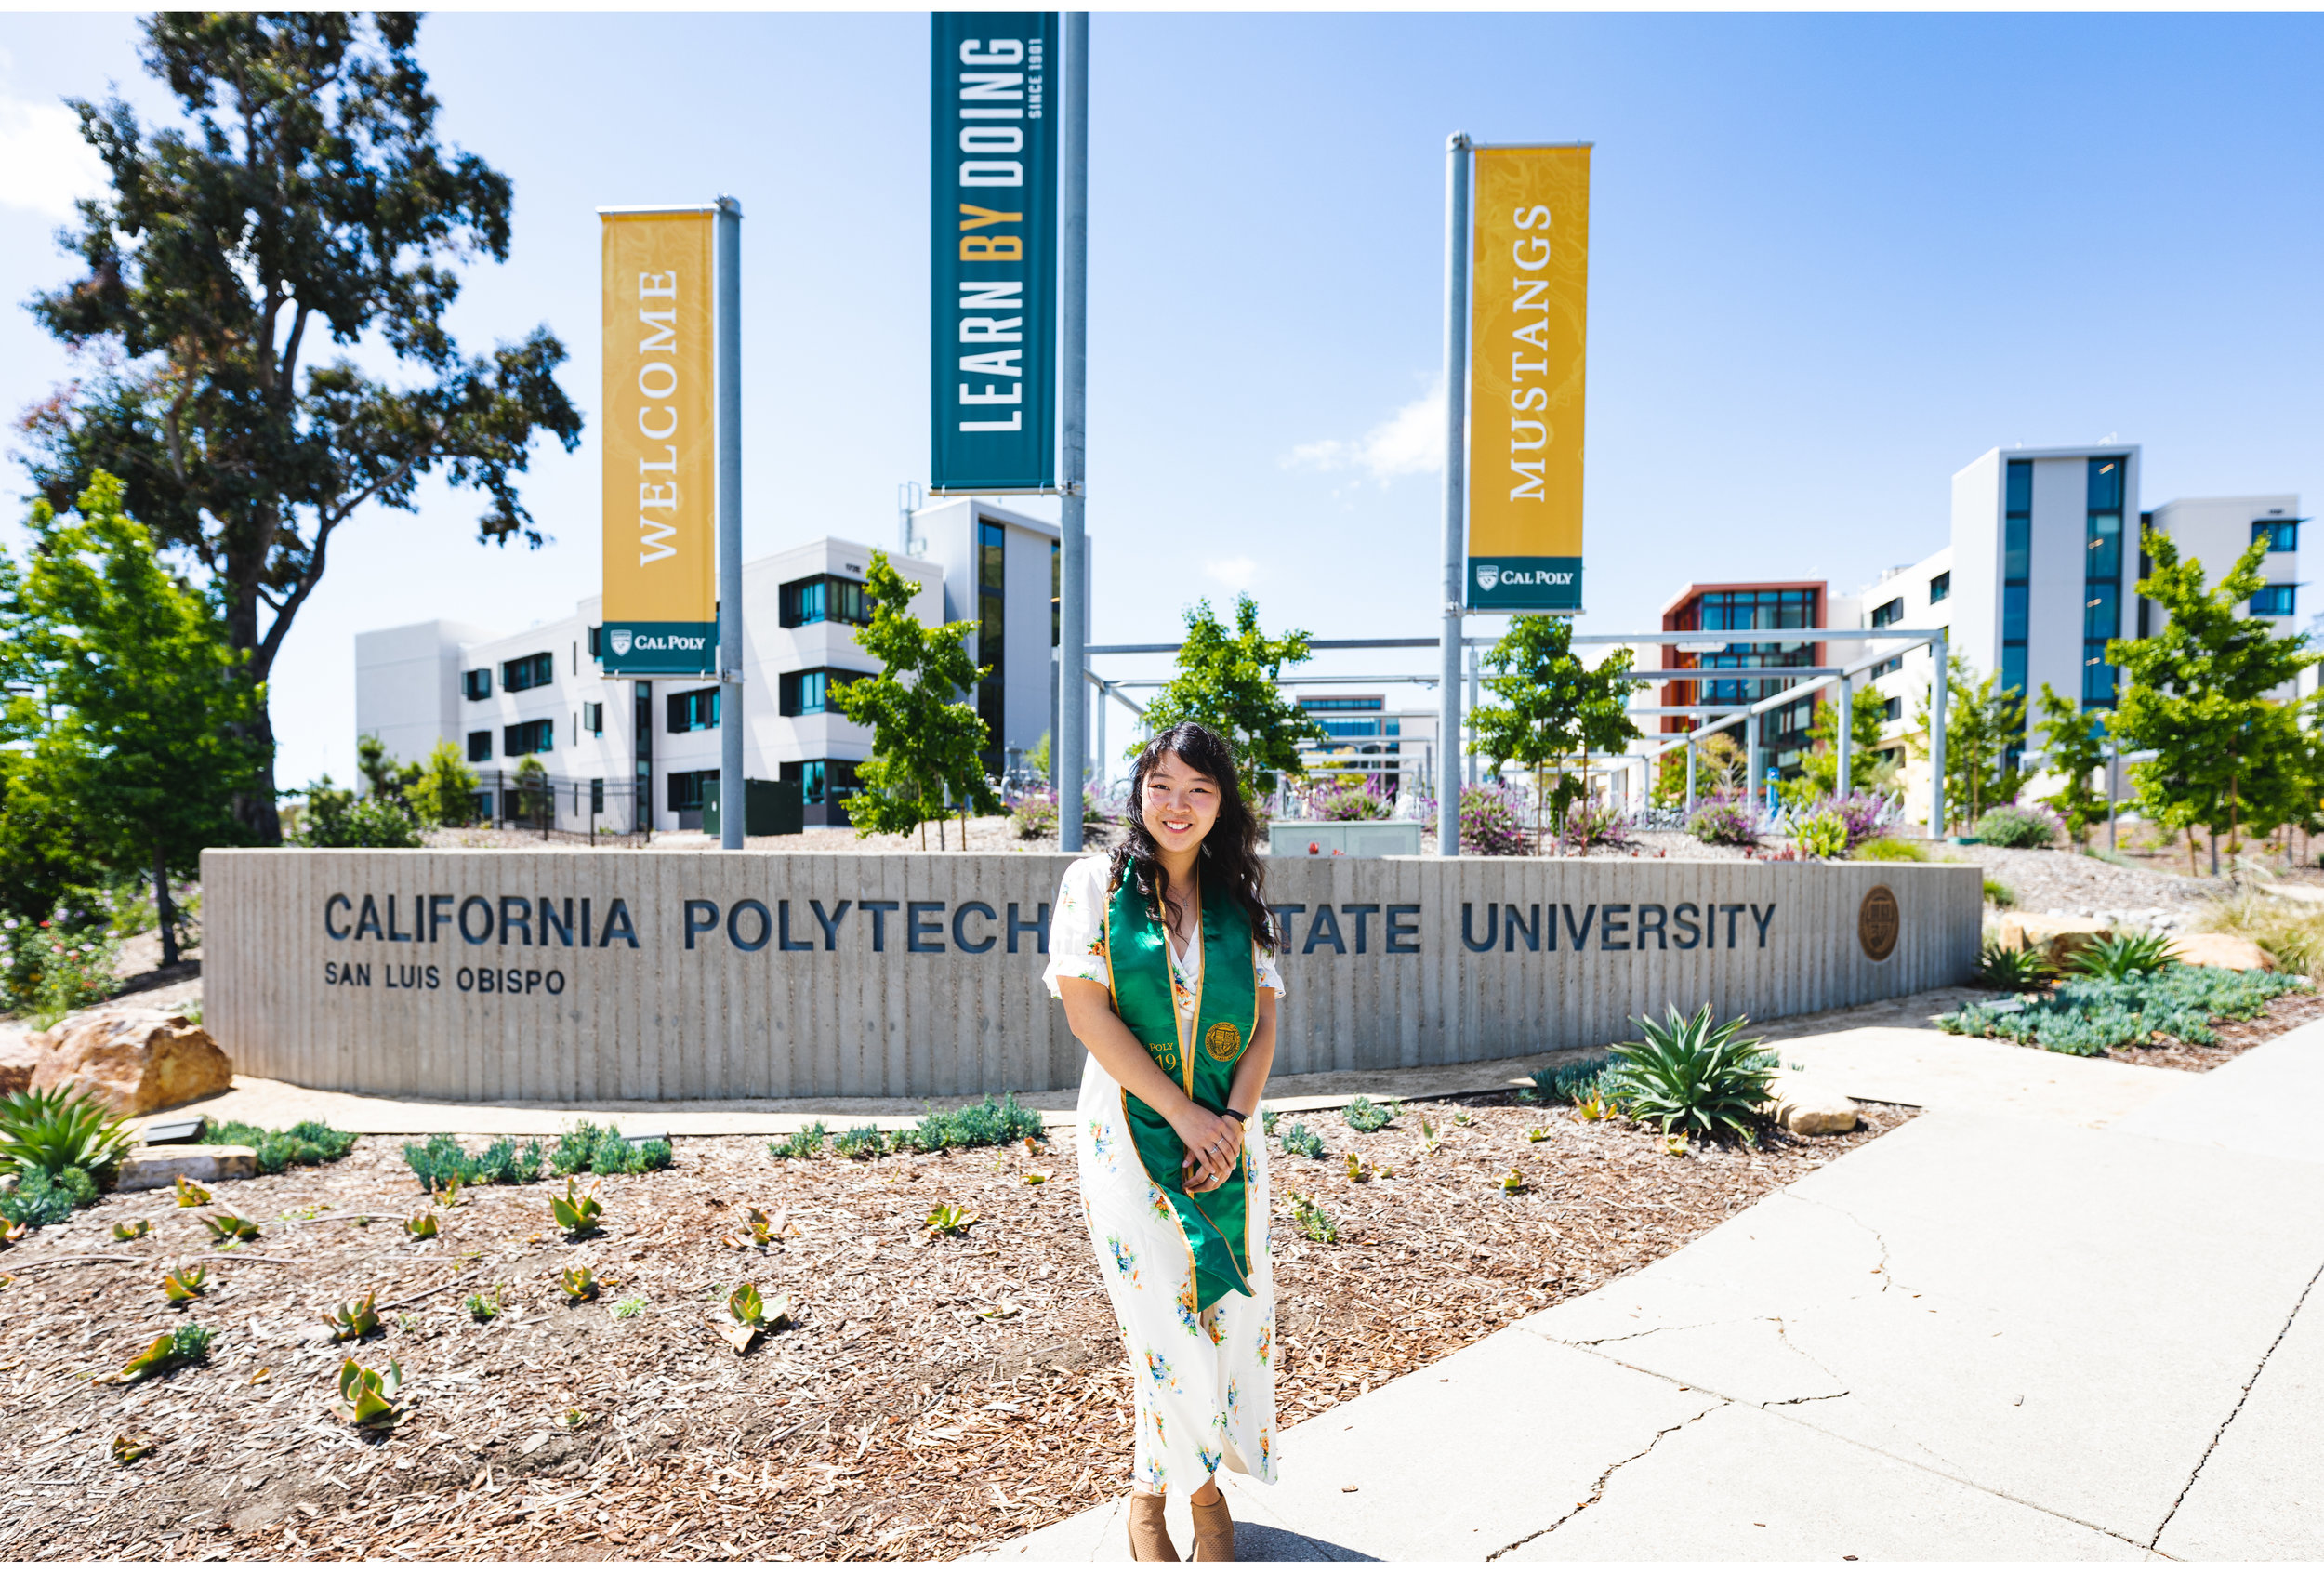 Cal Poly Grand Sign.jpg